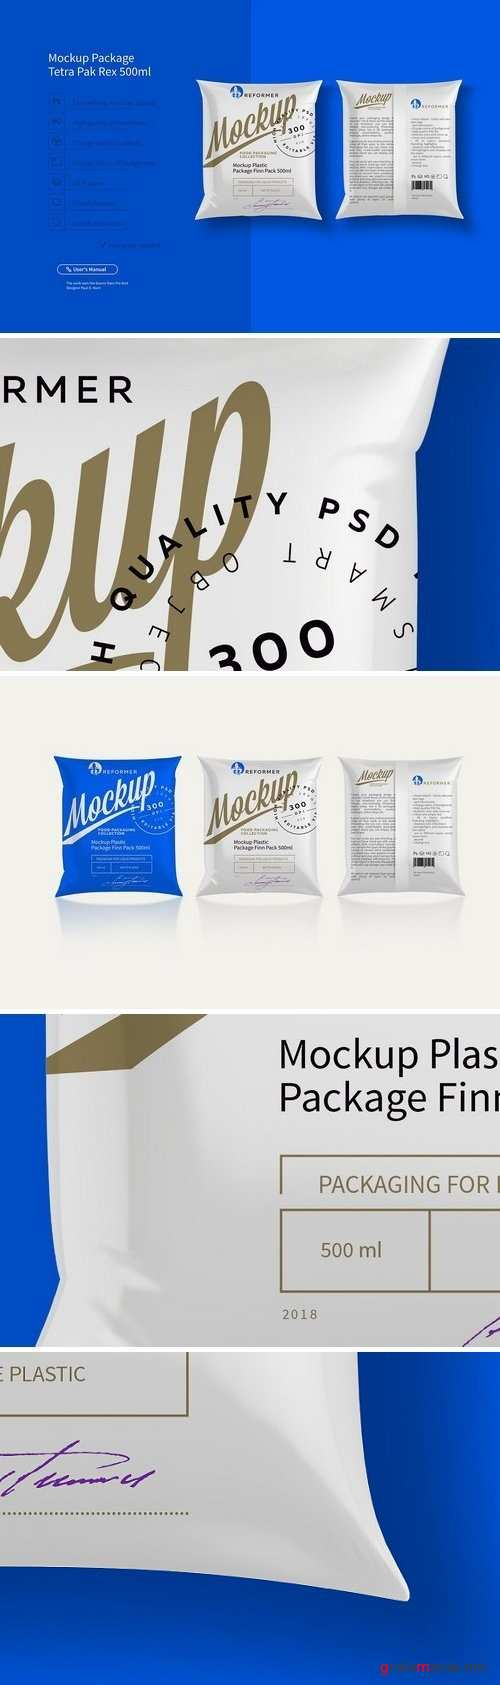 Mockup Package Finn Pack 500ml 2385536